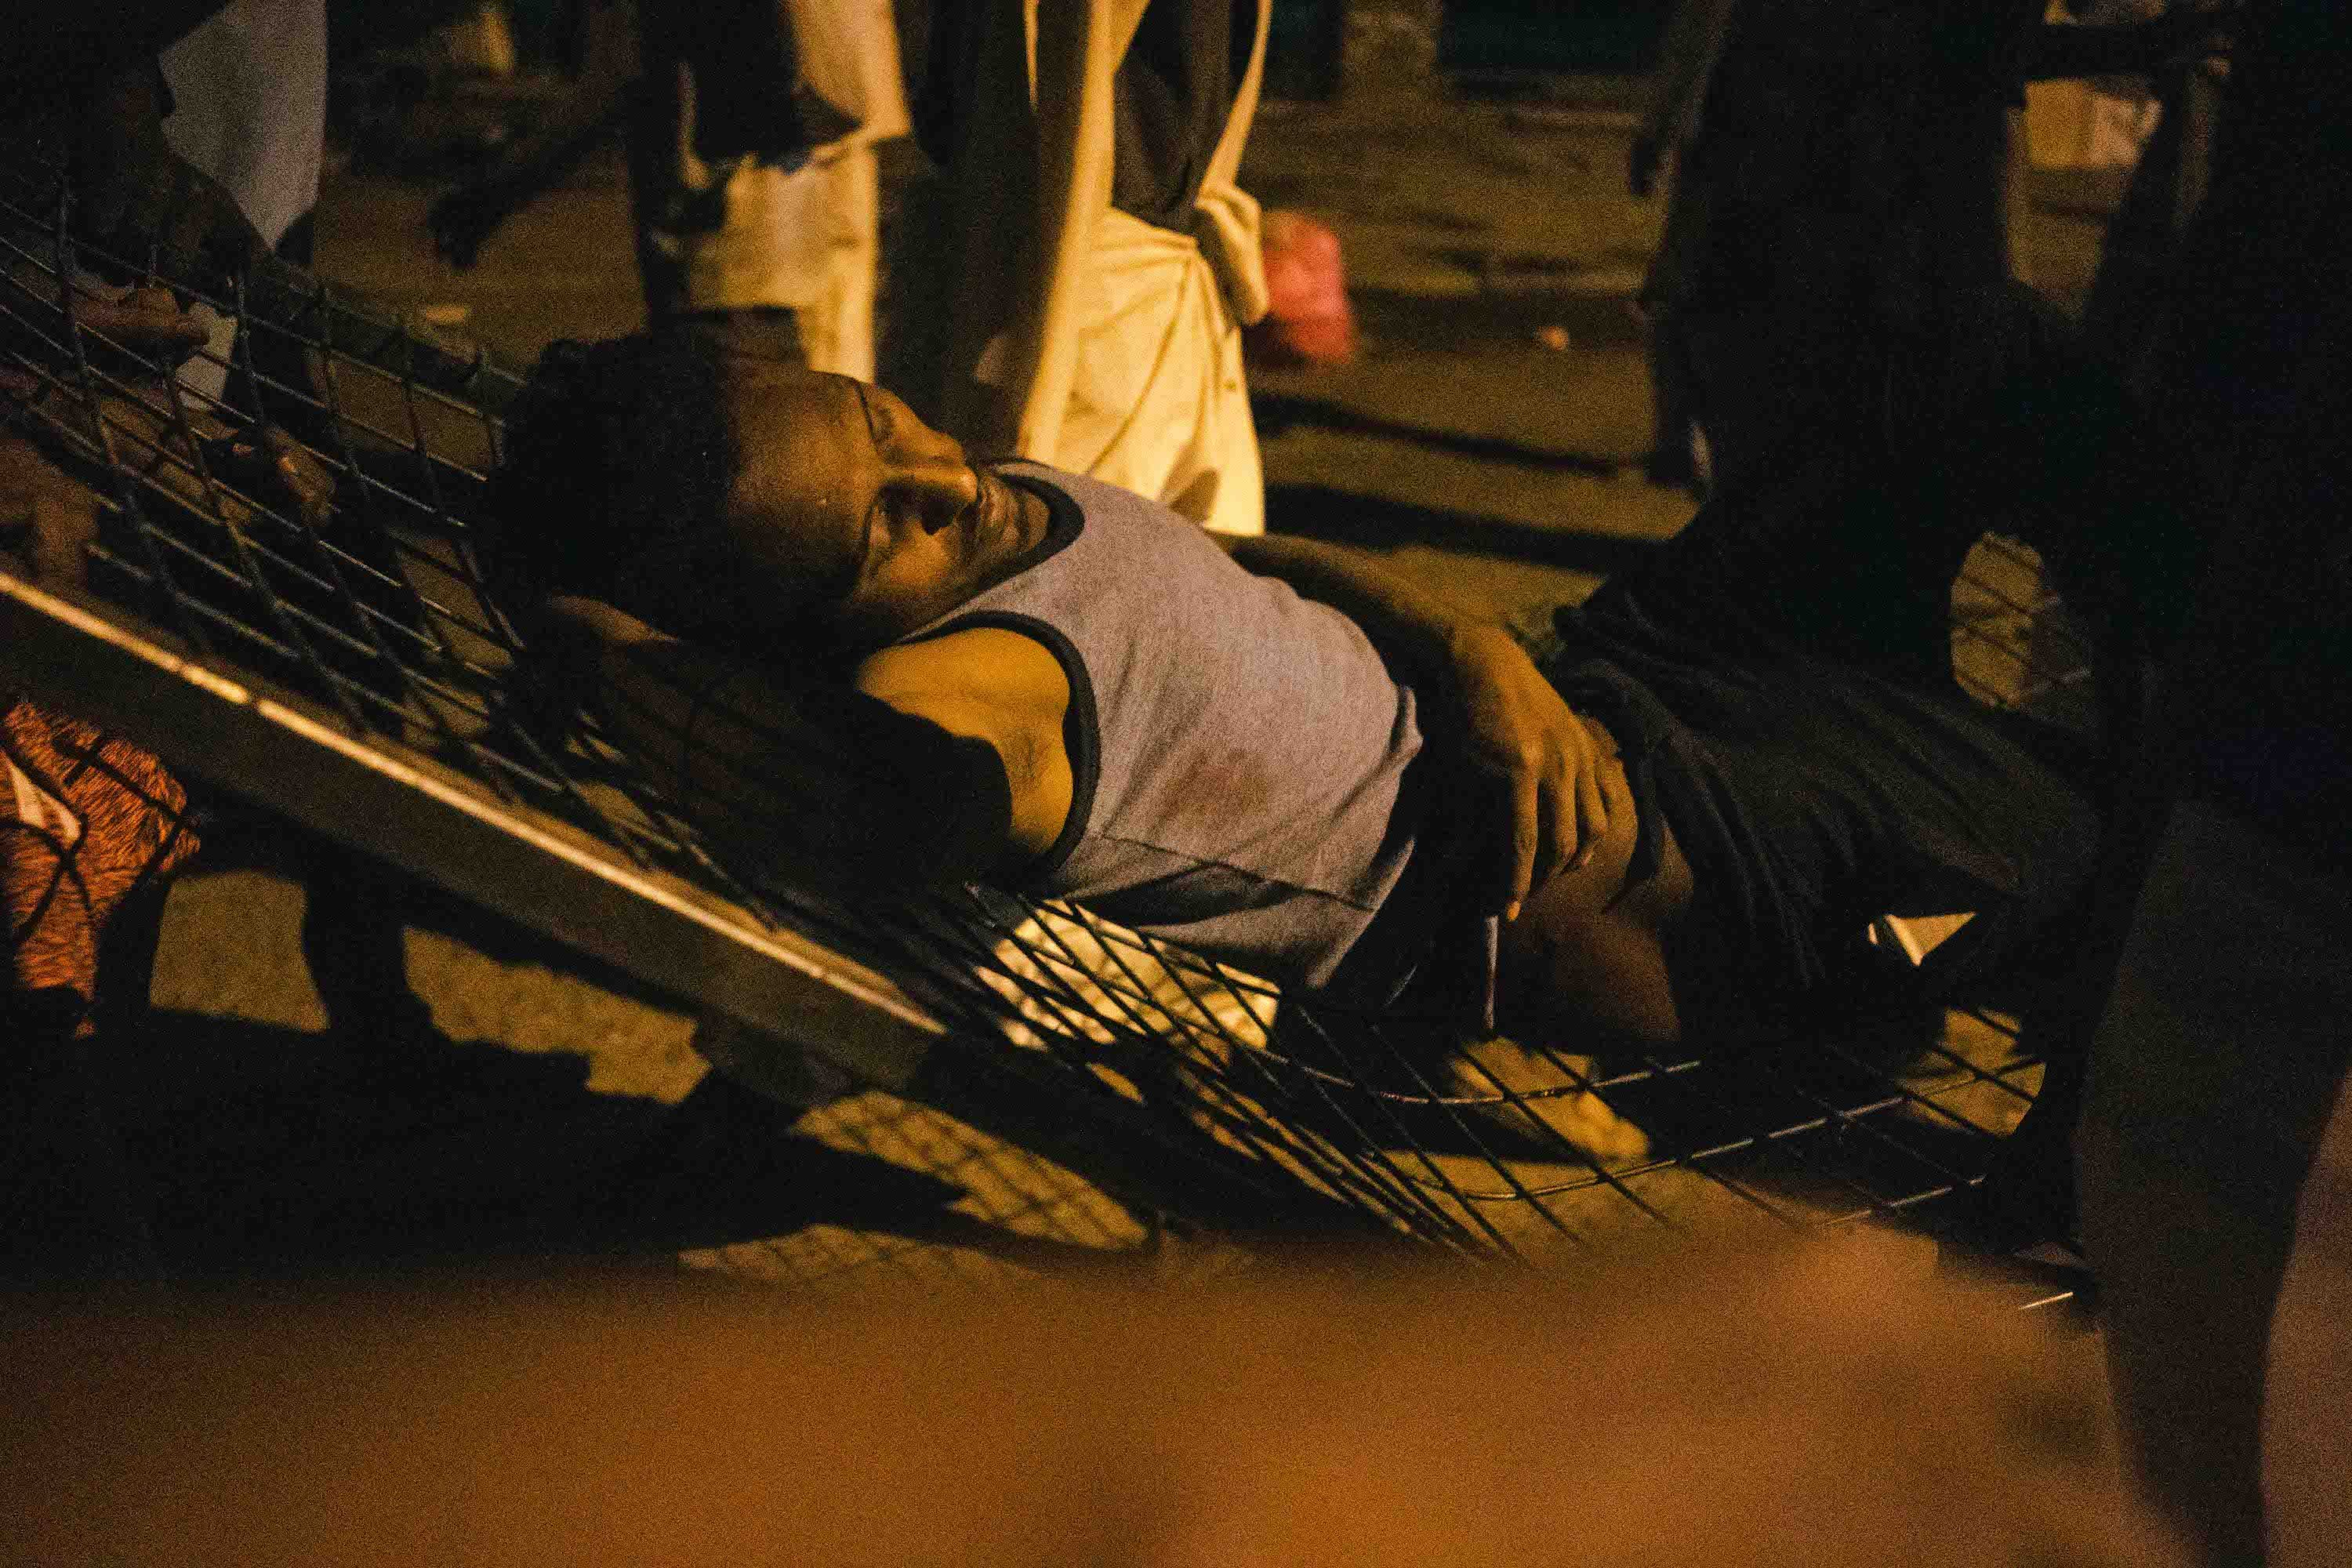 sudan injured protesters